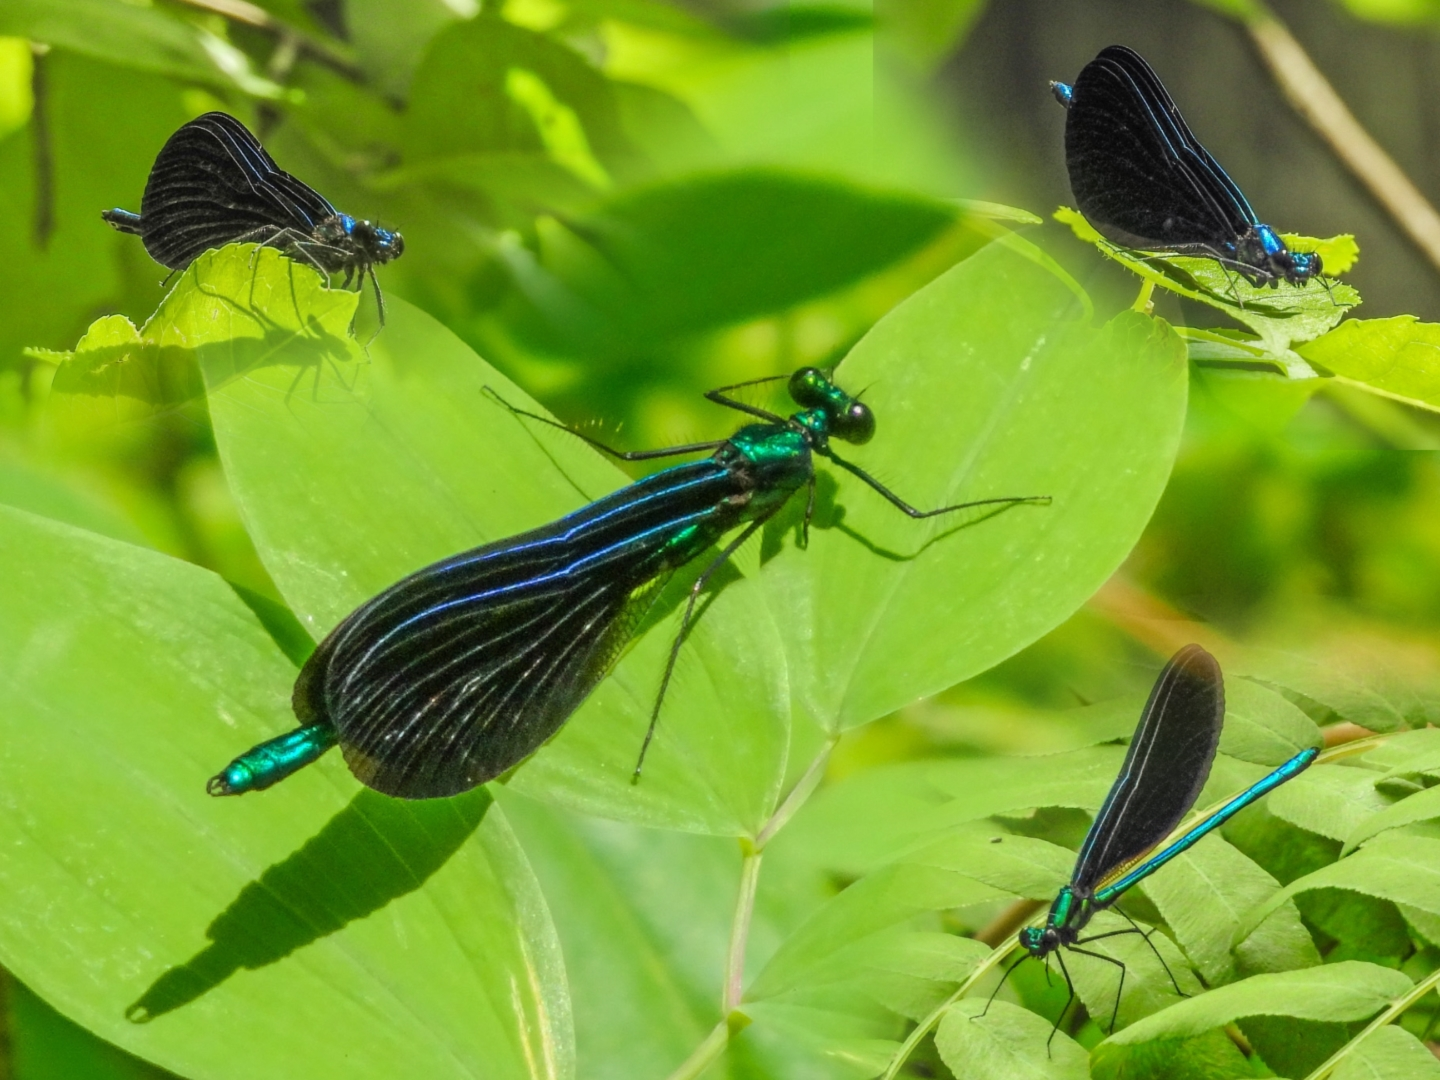 Ebony Jewelwings, Batson River rapids, Emmons Preserve, Kennebunkport ME